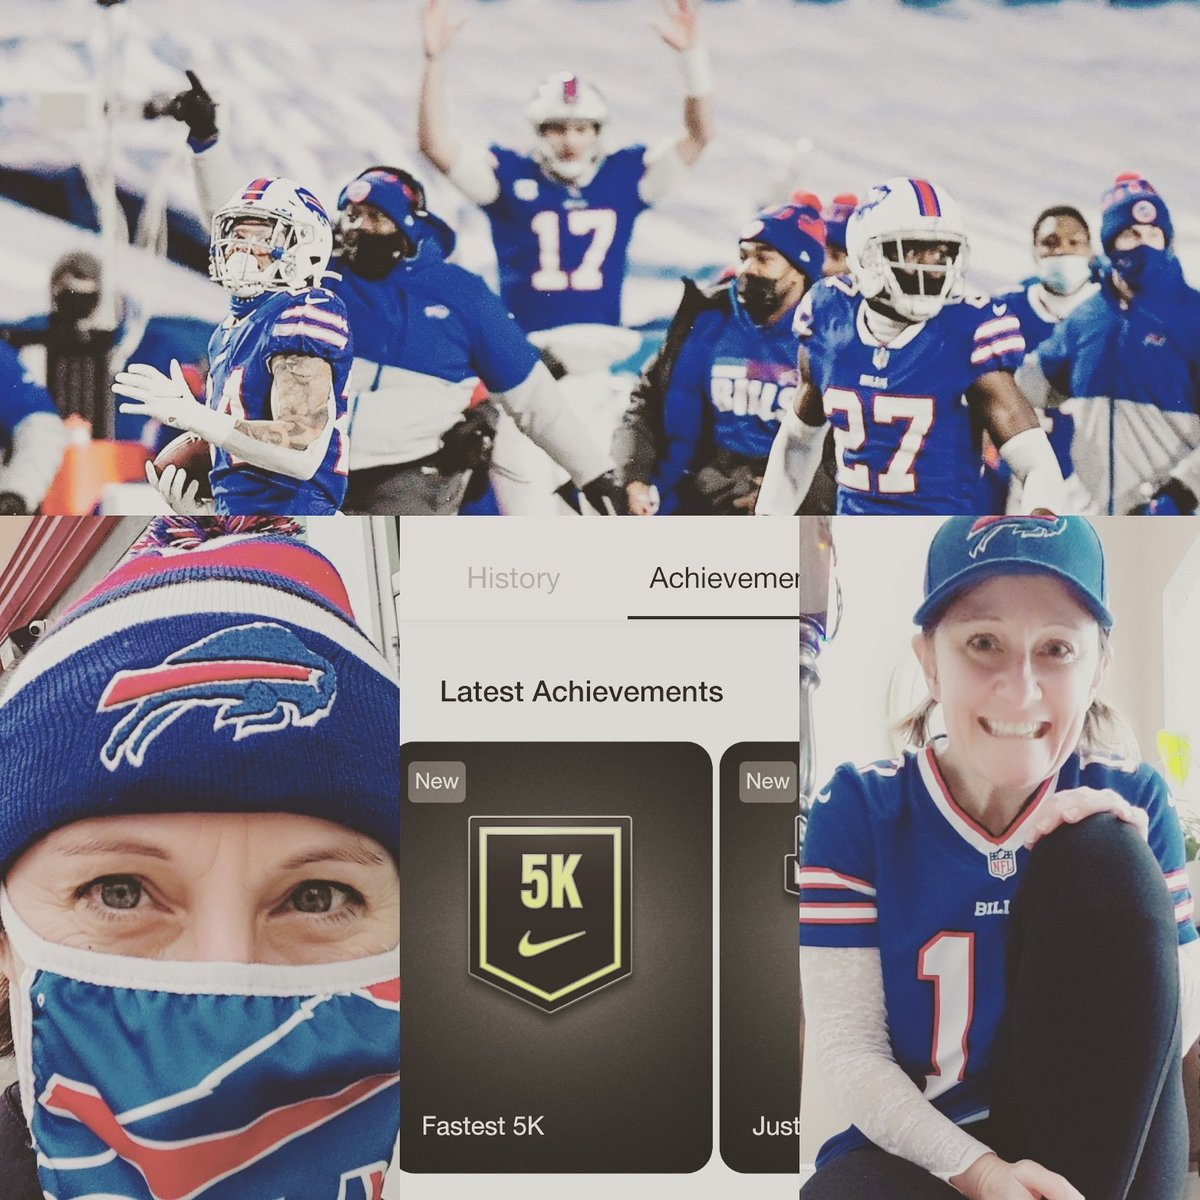 Having a #victorysunday  💙 Bills won! ❤️ Ran my fastest 5k in 2 months 💙 Got my first #GoBills while running ❤️ Did I mention Bills won? #billsmafia #buffalobills #billswin #running @nikerunning @buffalobills #BillsByABillion